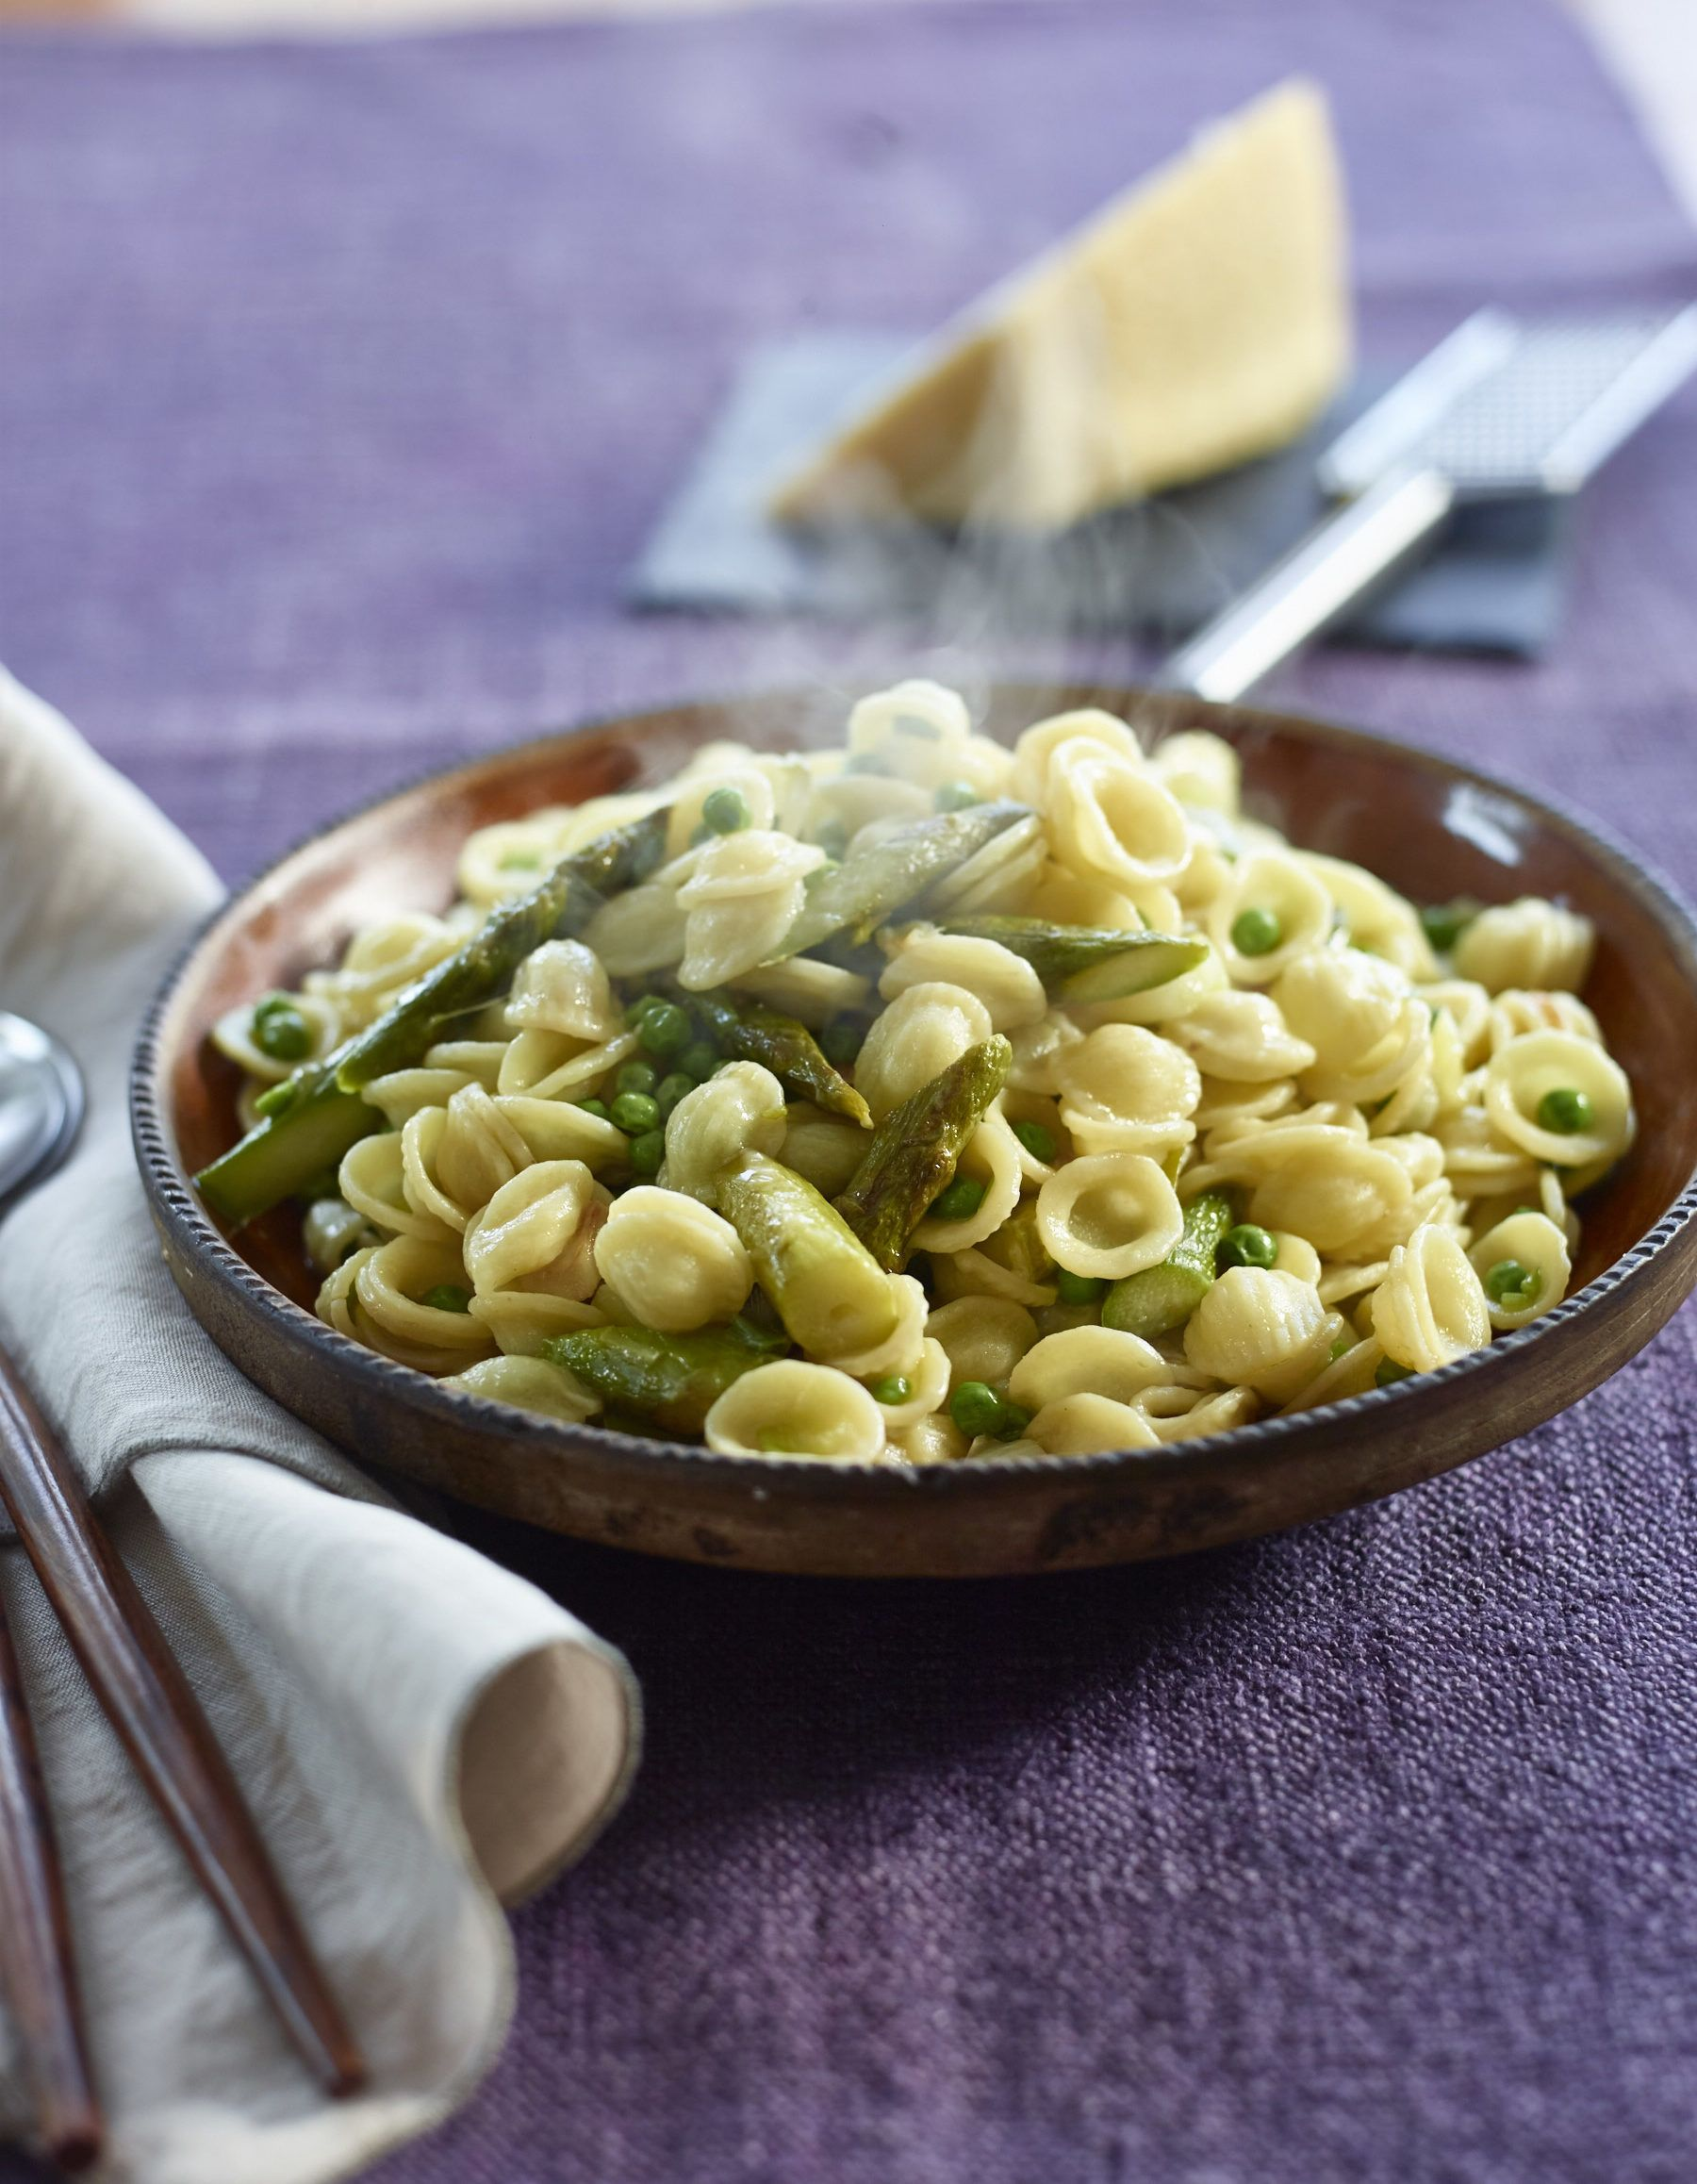 Just wanted to share this delicious recipe from Lidia Bastianich with you - Buon Gusto! ORECCHIETTE WITH ASPARAGUS AND PEAS